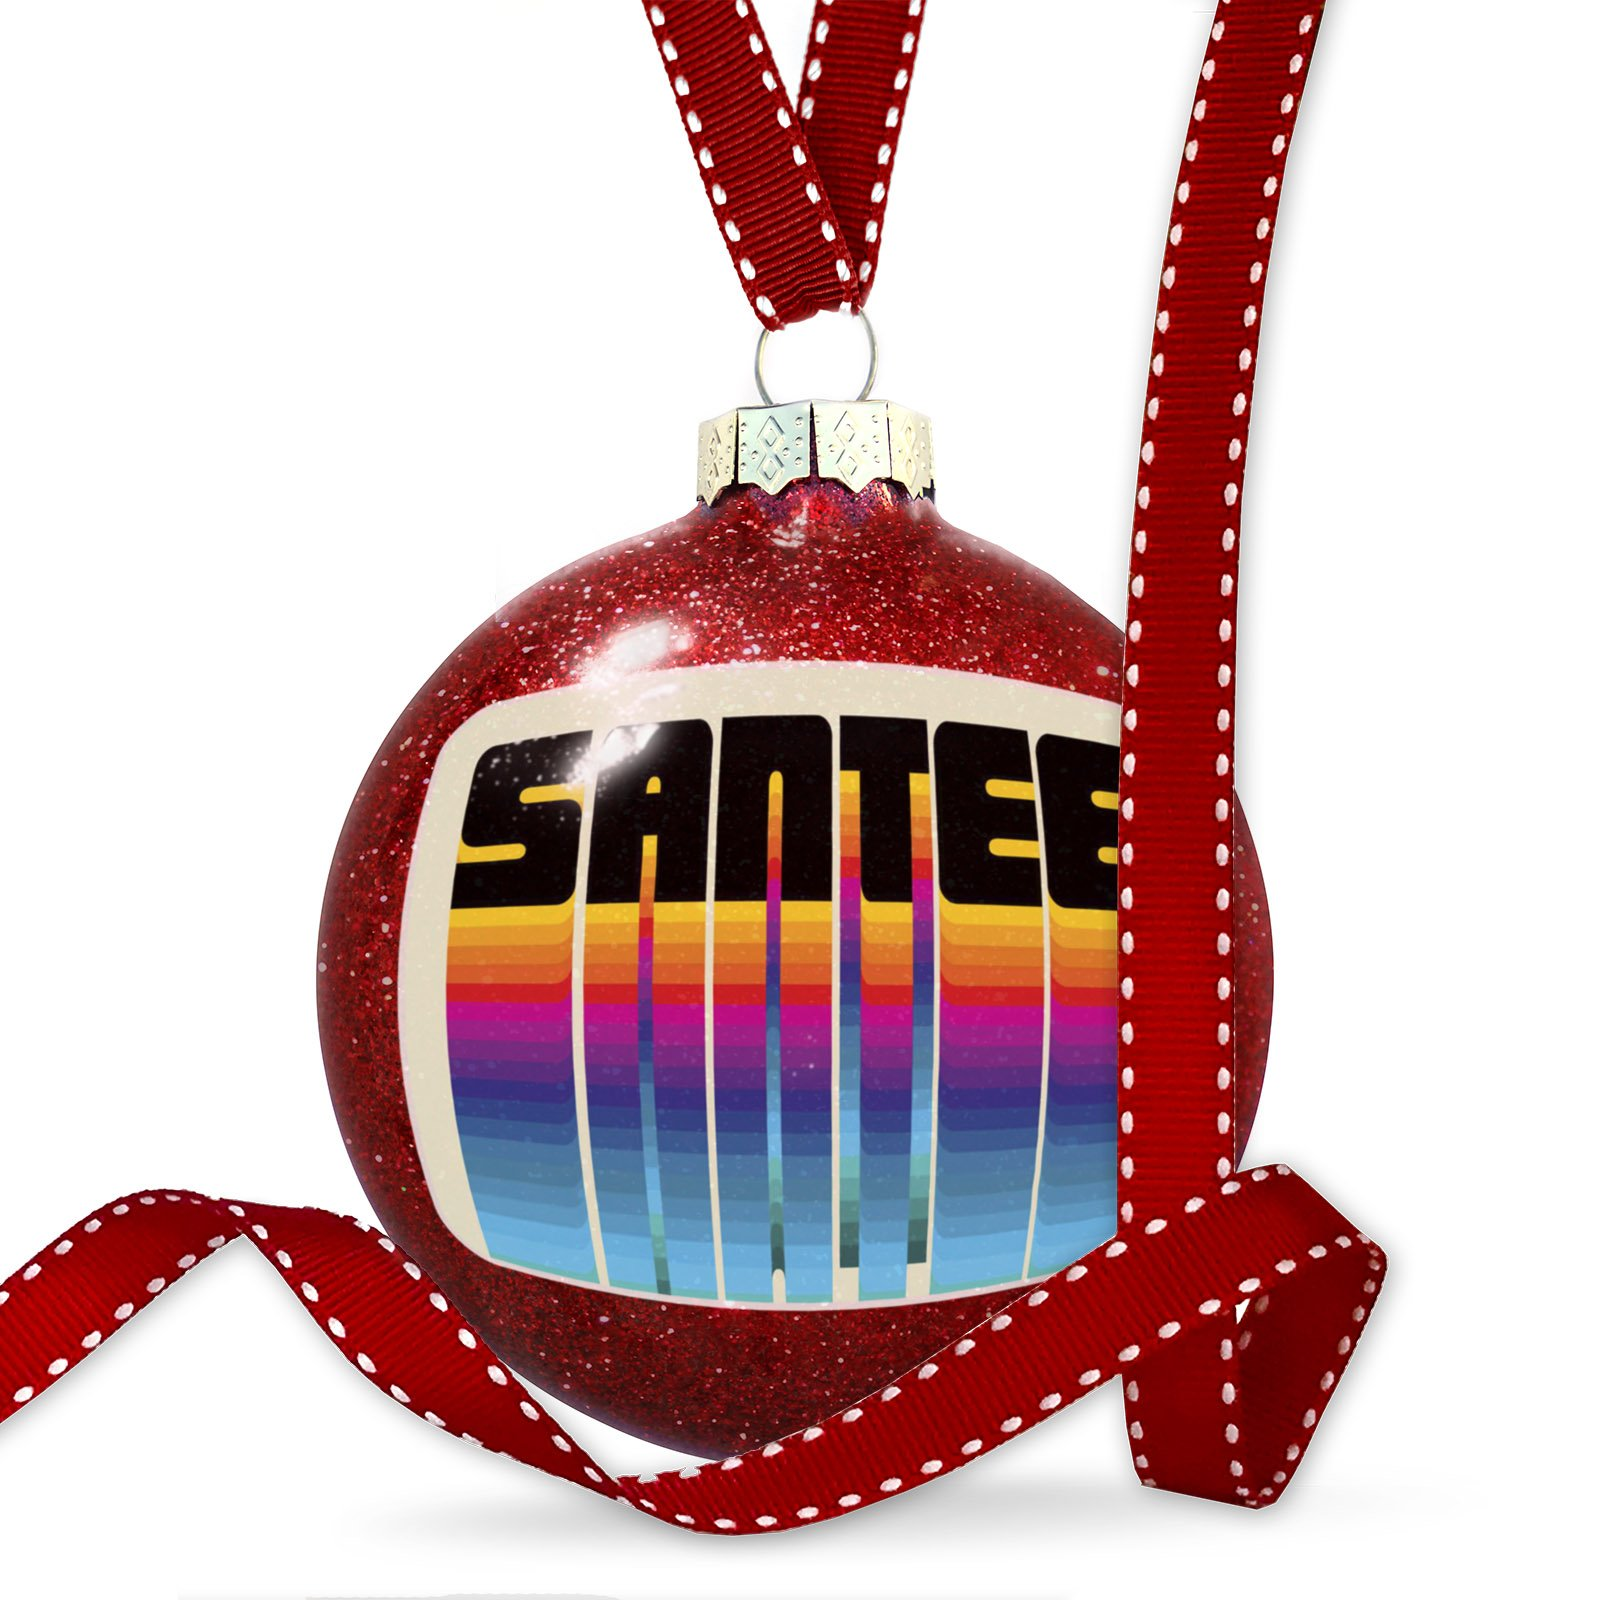 Christmas Decoration Retro Cites States Countries Santee Ornament